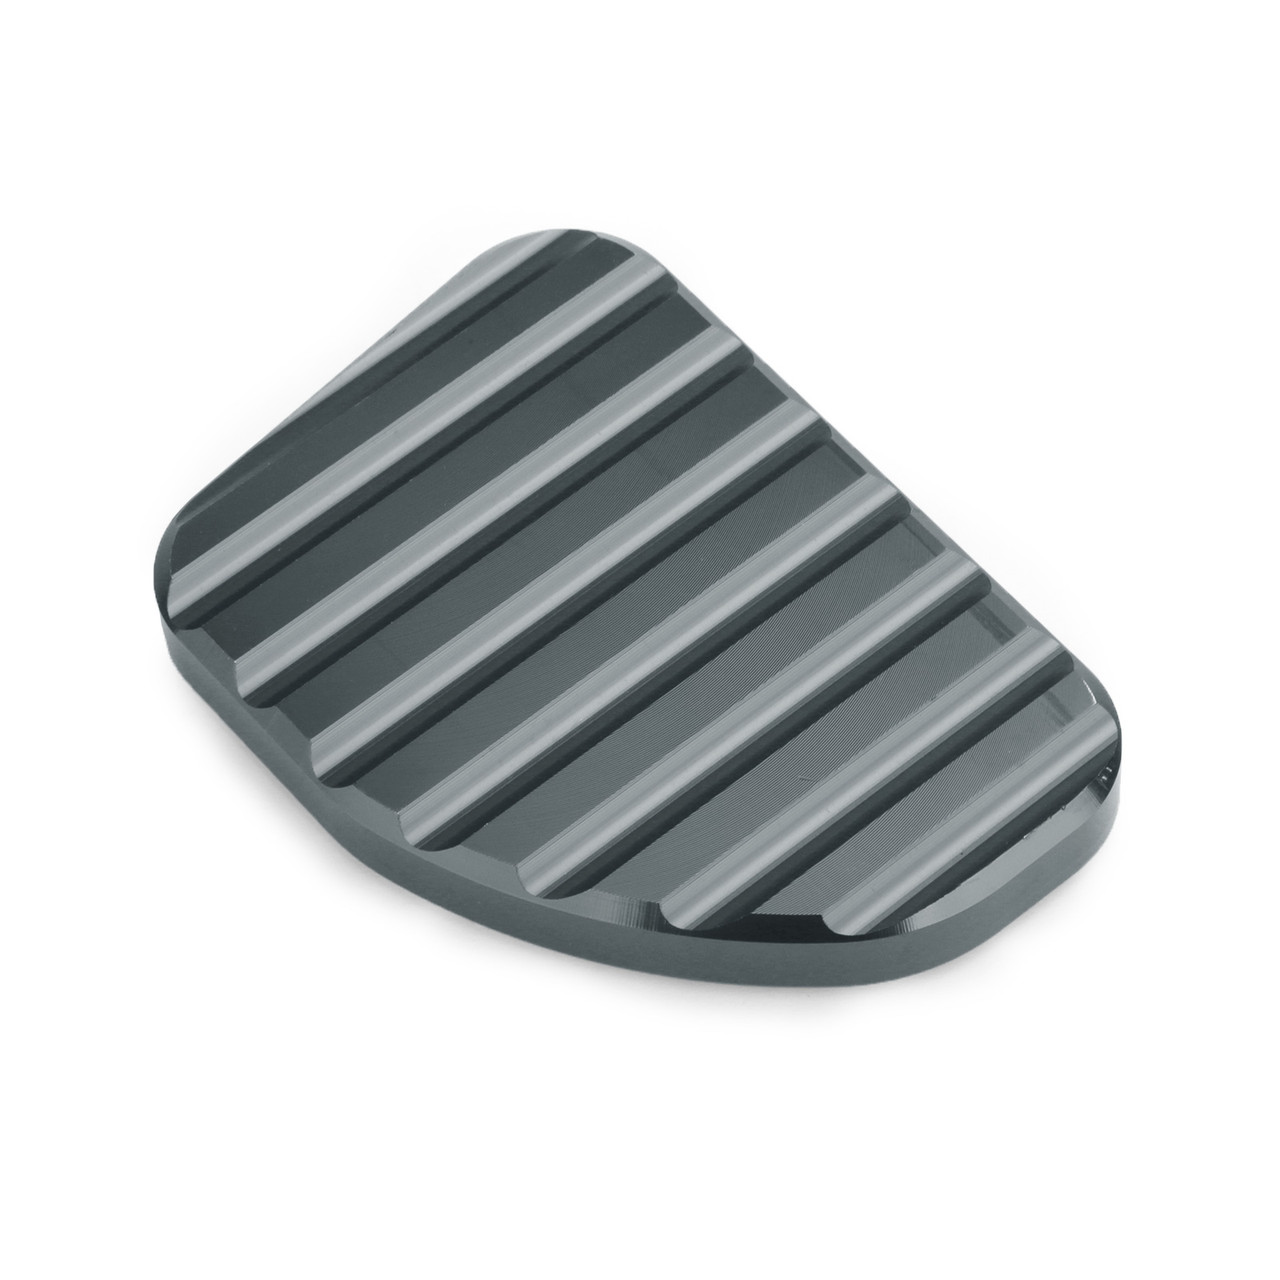 Kickstand Sidestand Extension Foot Plate Pad For Honda GoldWing GL1800 2010-2017 Titanium